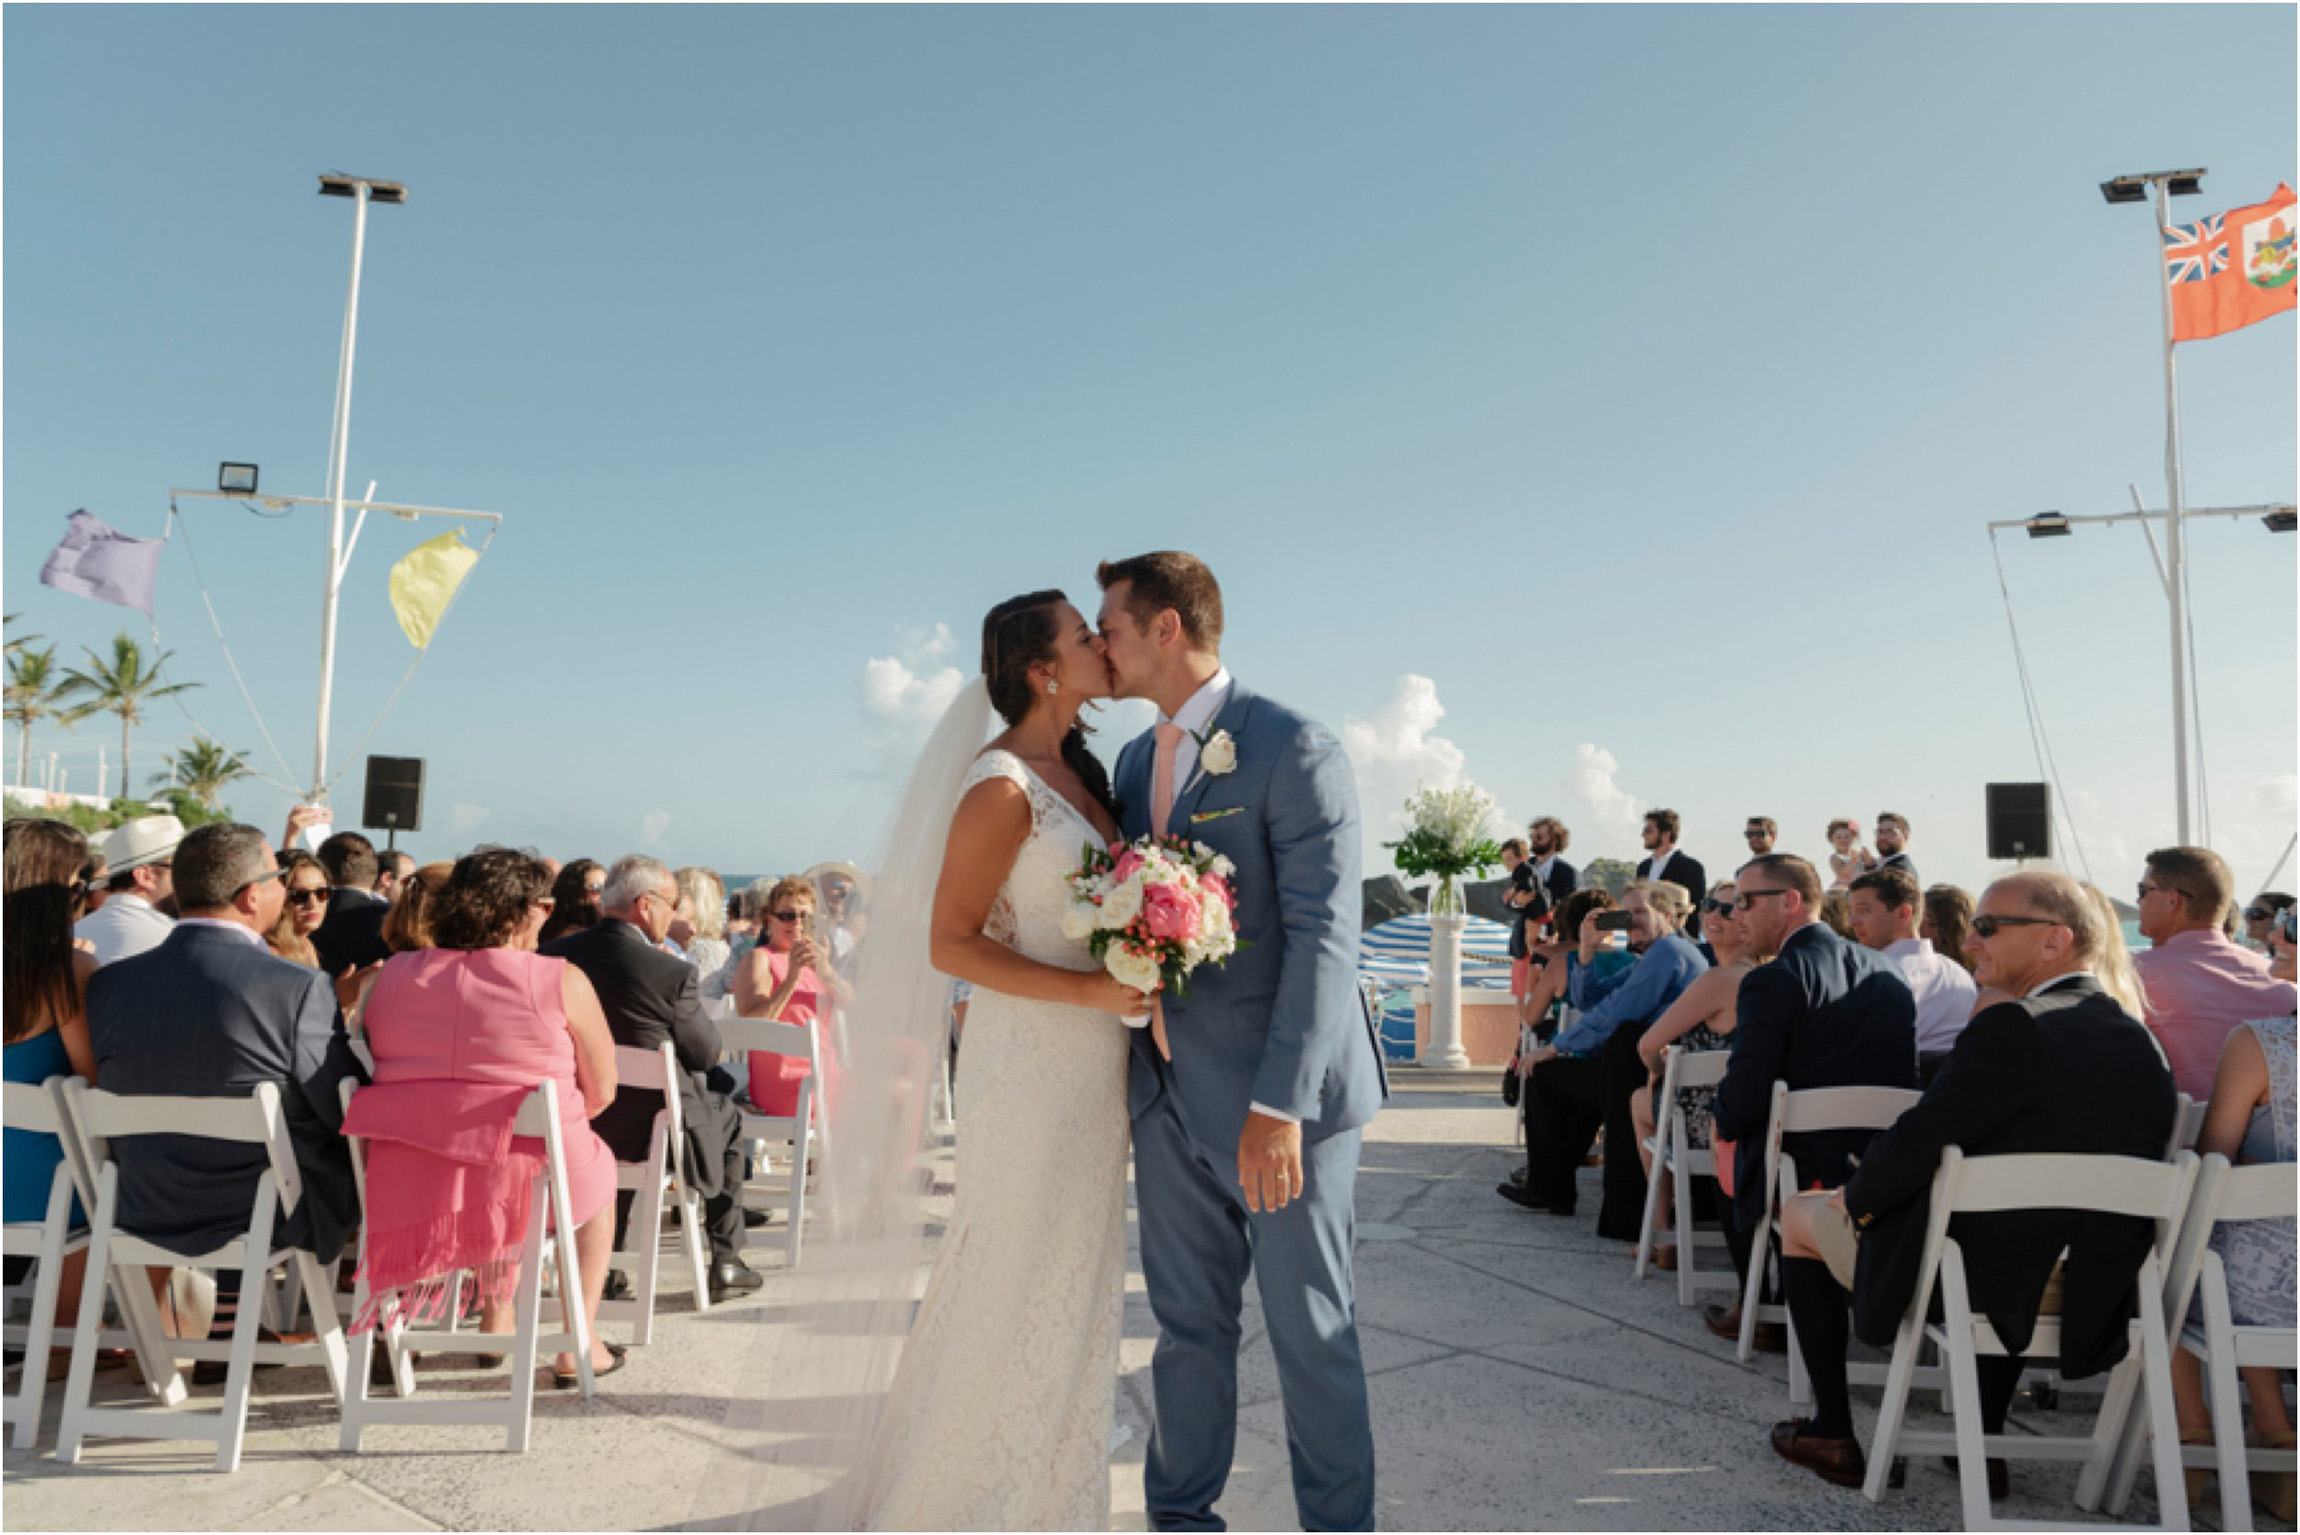 ©FianderFoto_Bermuda Wedding Photographer_Fairmont Southampton_Wedding_Anna_Thomas_066.jpg